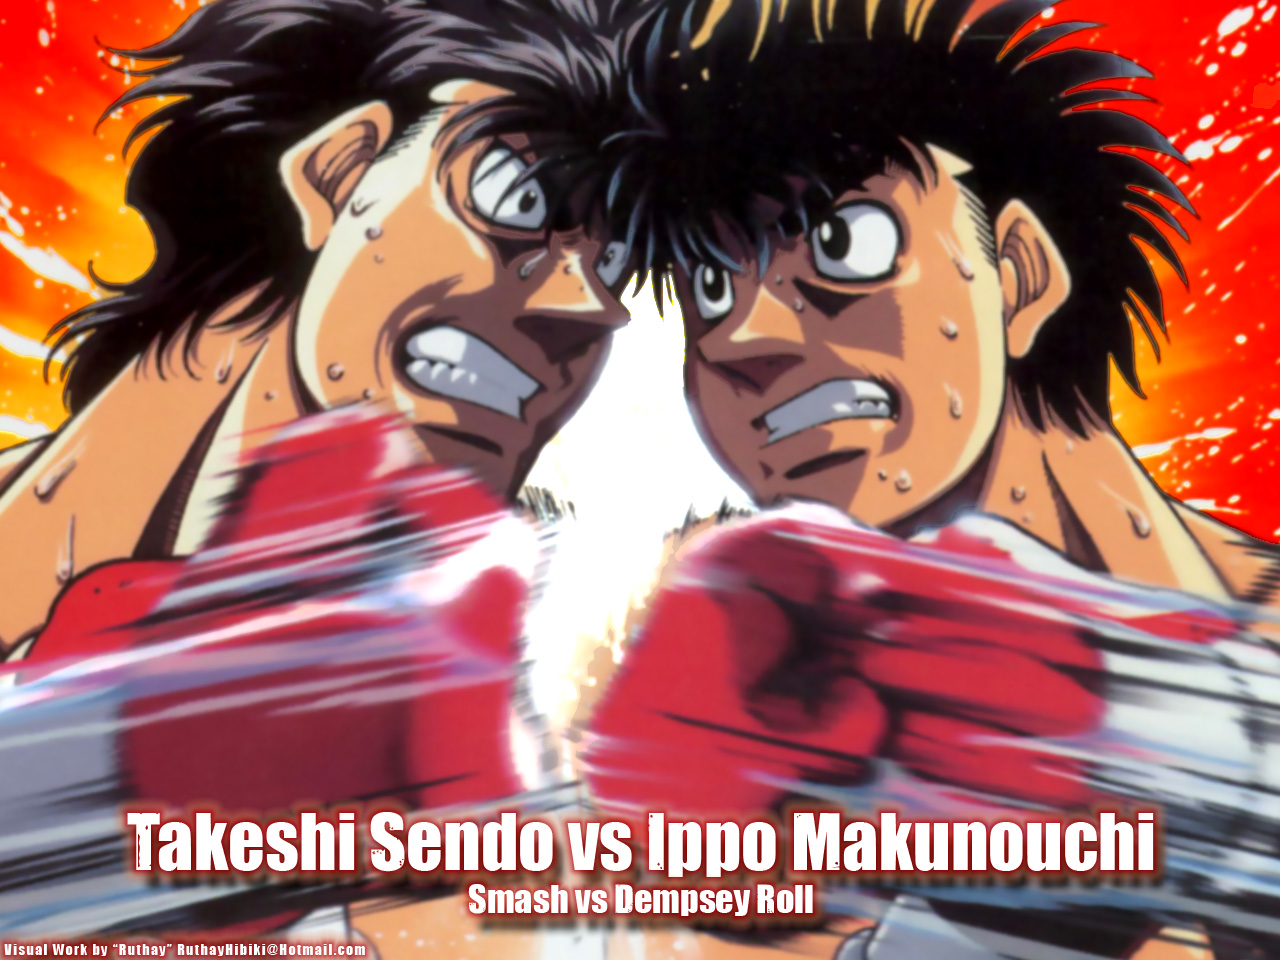 Fsw List 76 Top 8 Hajime No Ippo Fights The Wired Fish Network